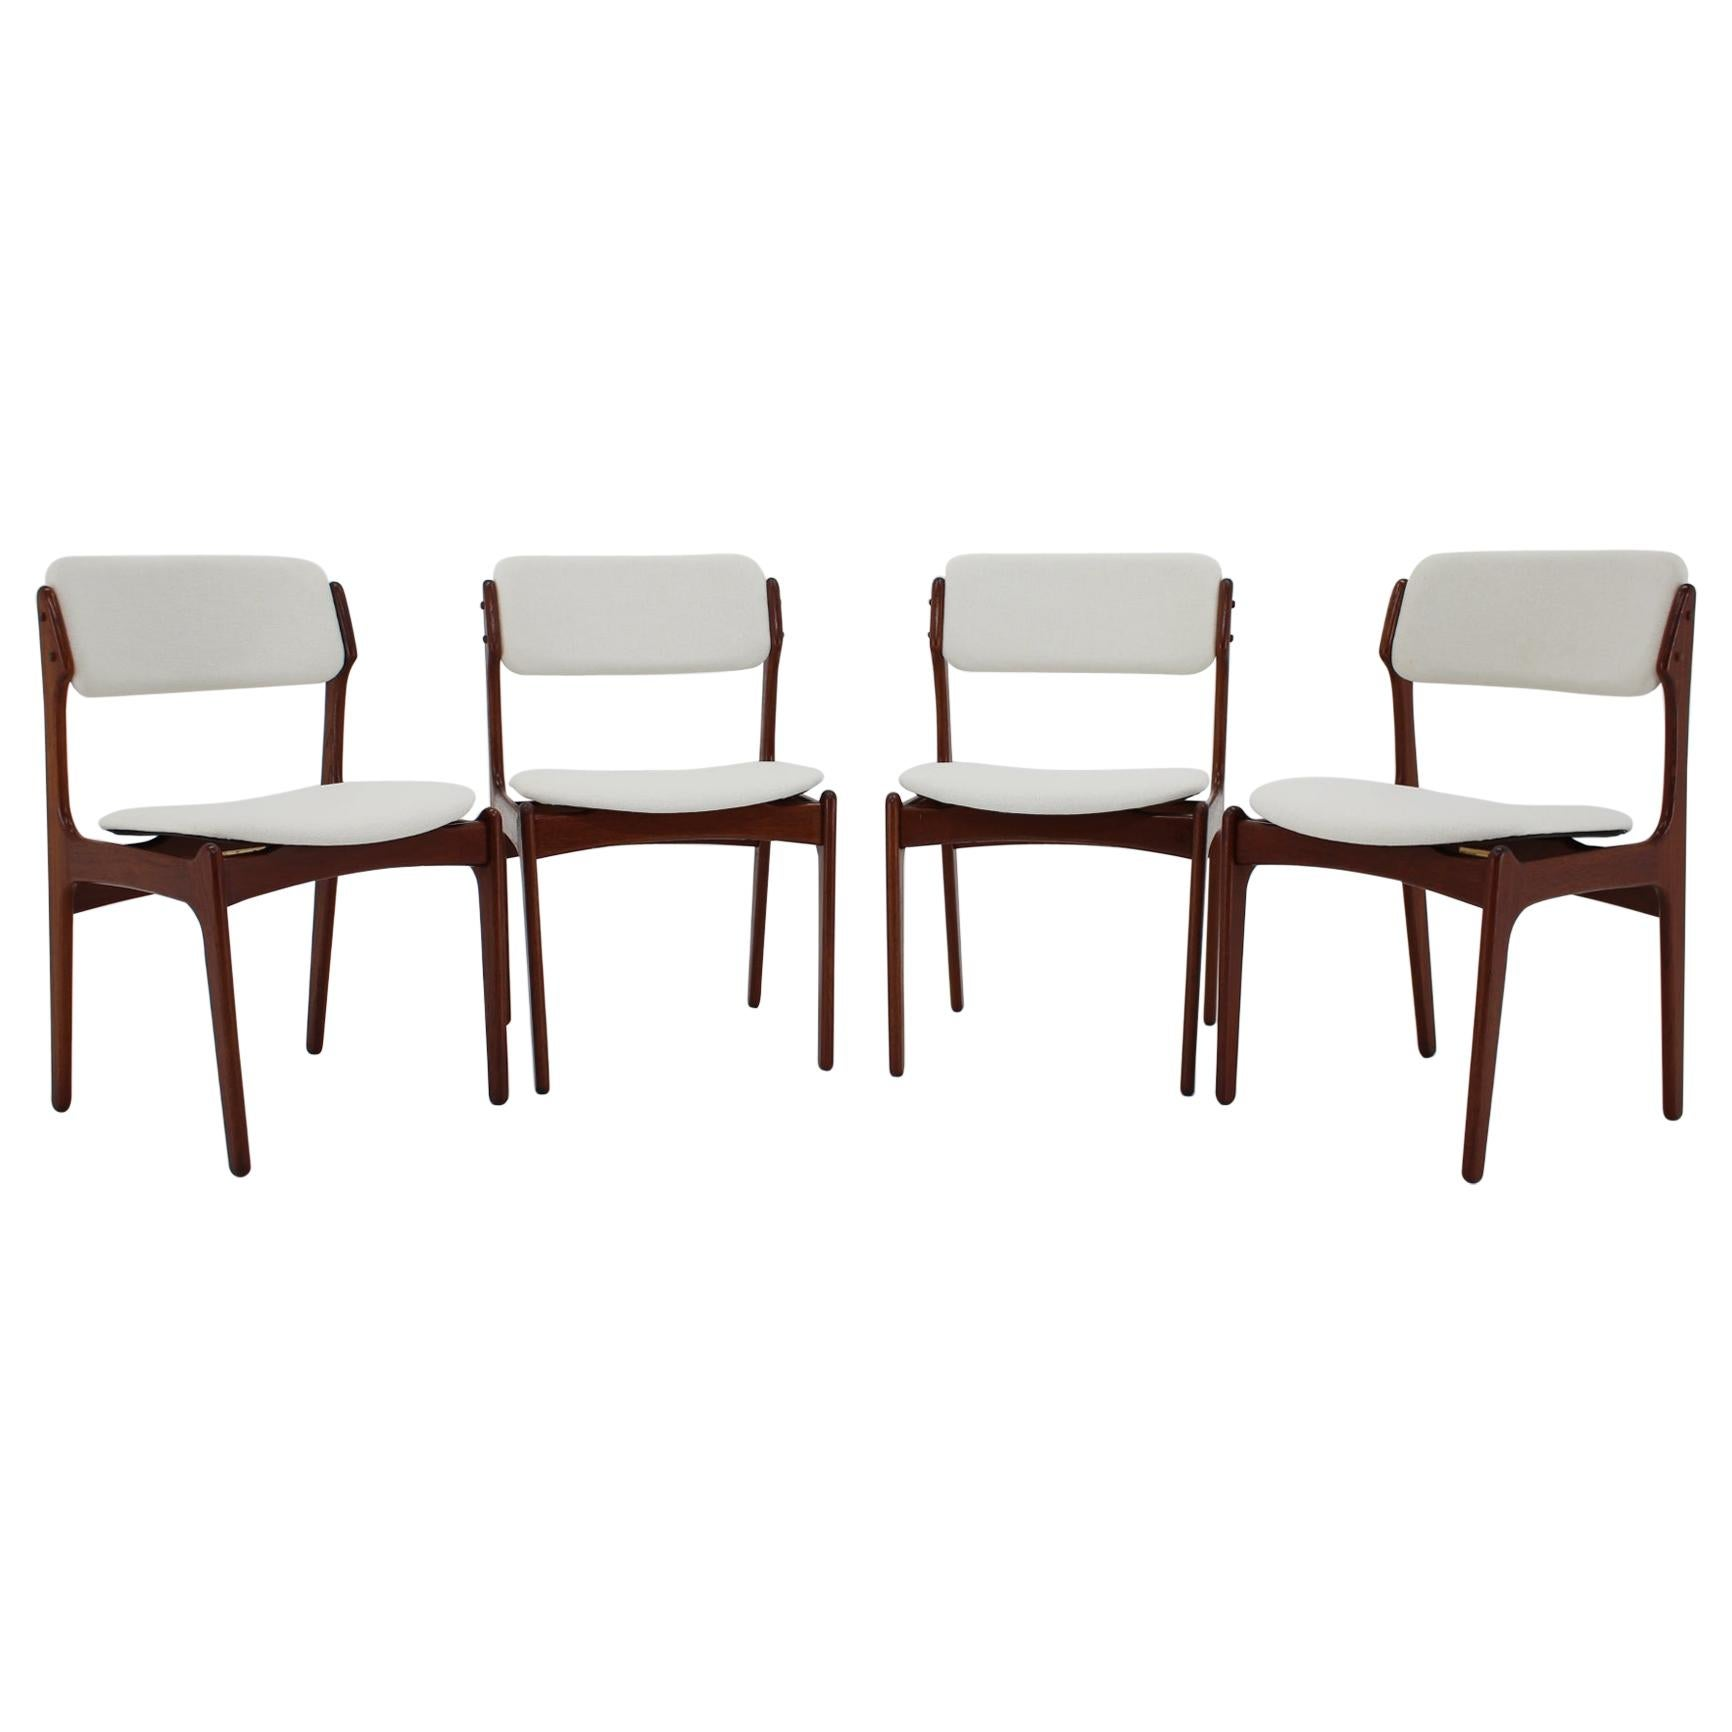 1960s Erik Buch Set of Four Teak Dining Chairs, Denmark